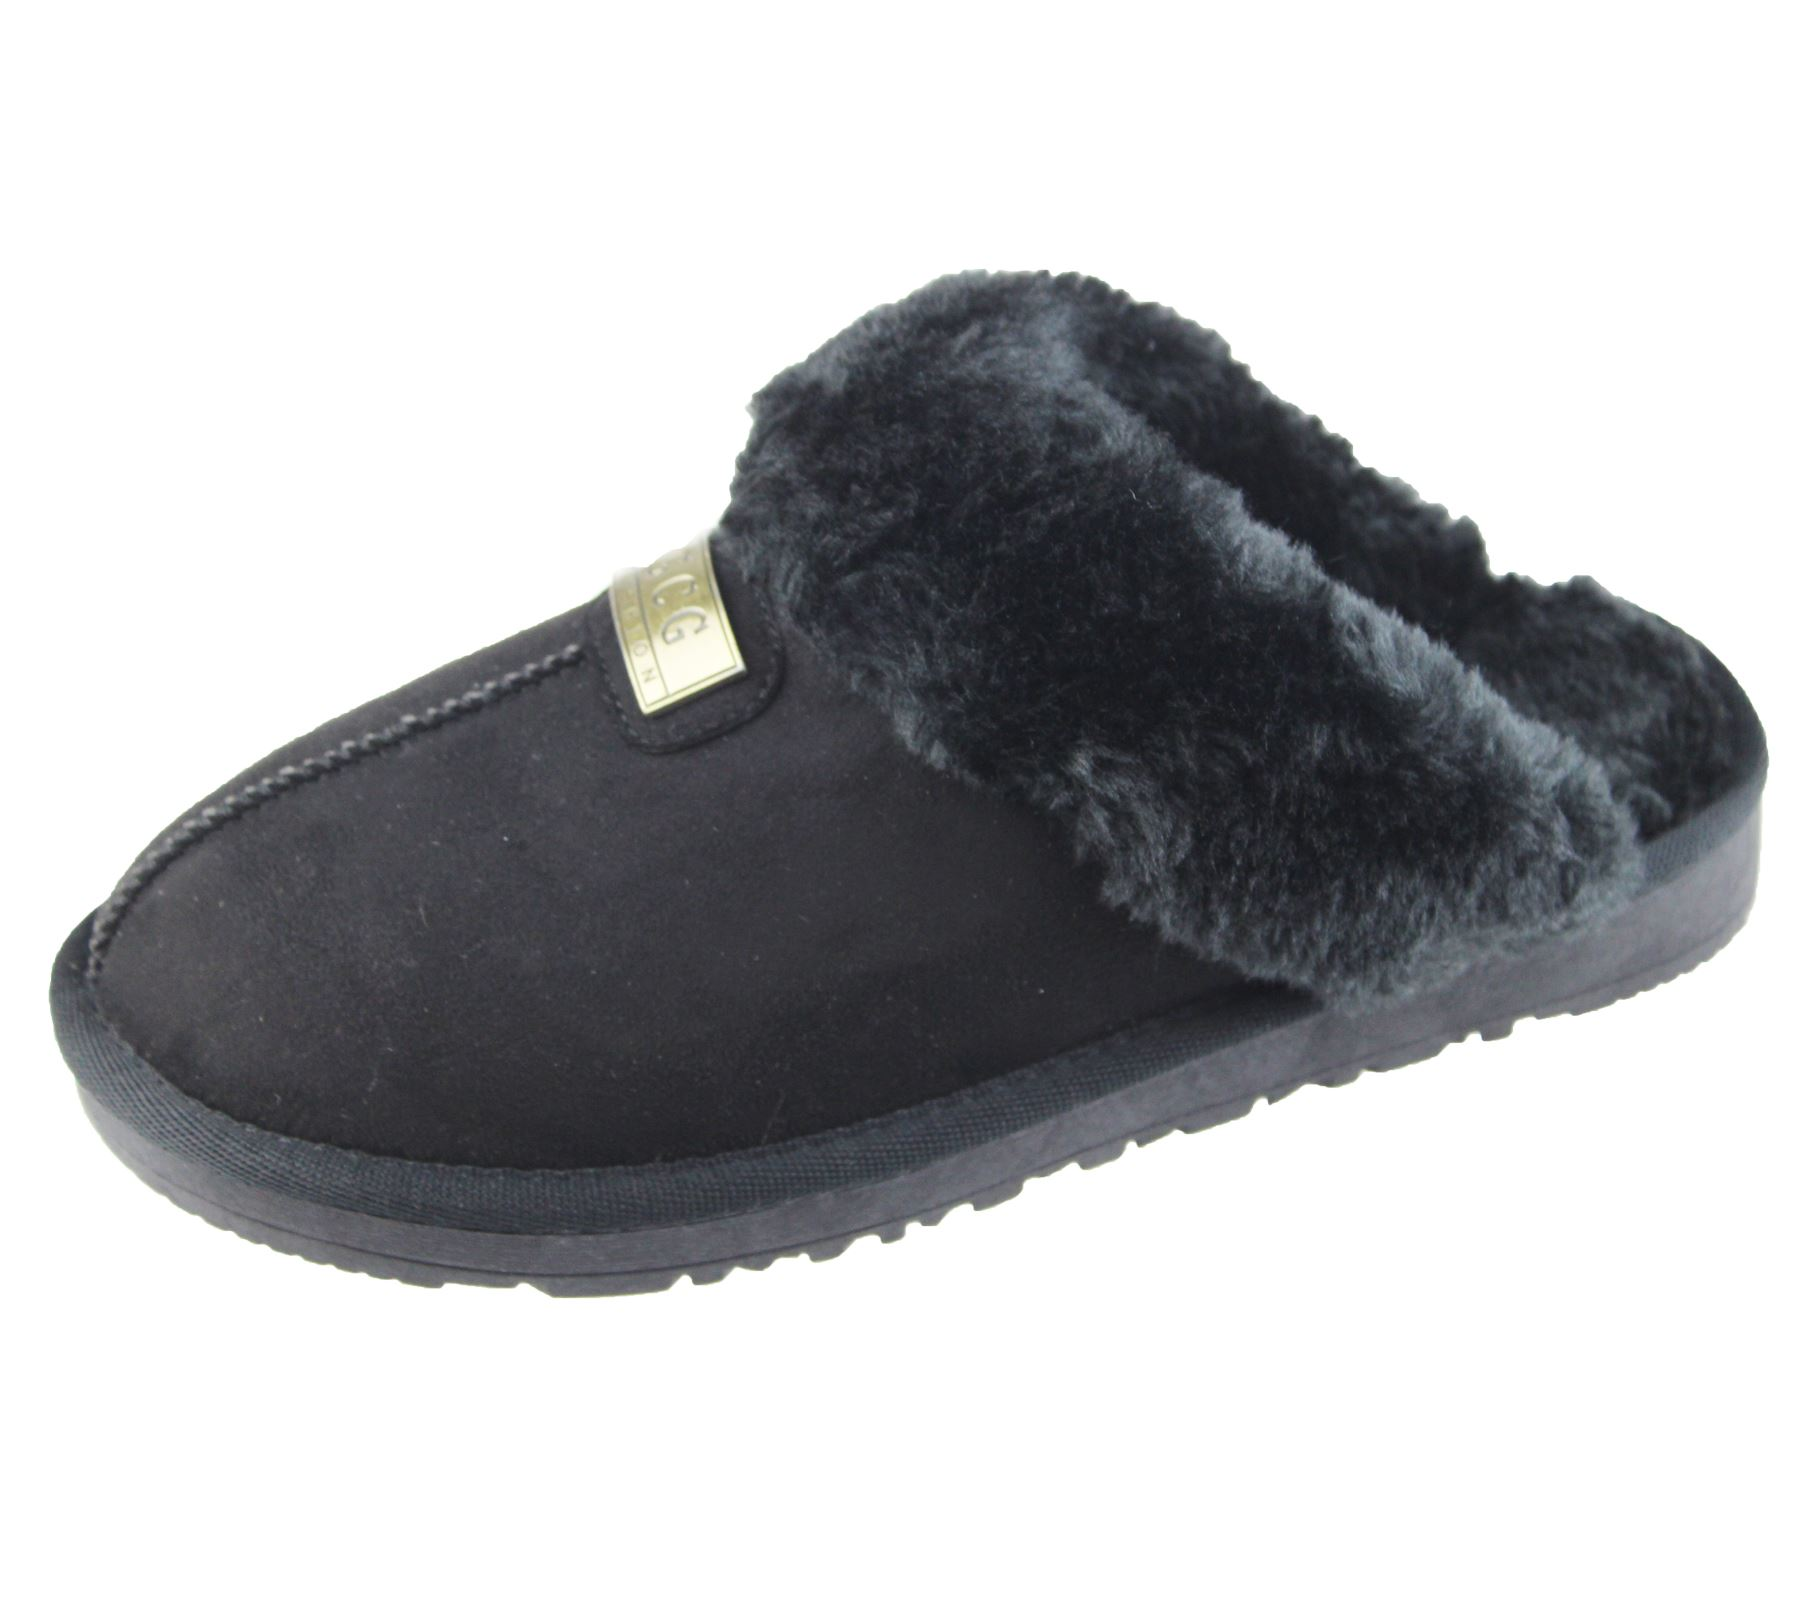 Womens Fur Lined Slippers Ladies Mules Non Slip Rubber Sole Black Size UK 6 42f108bbc0e9